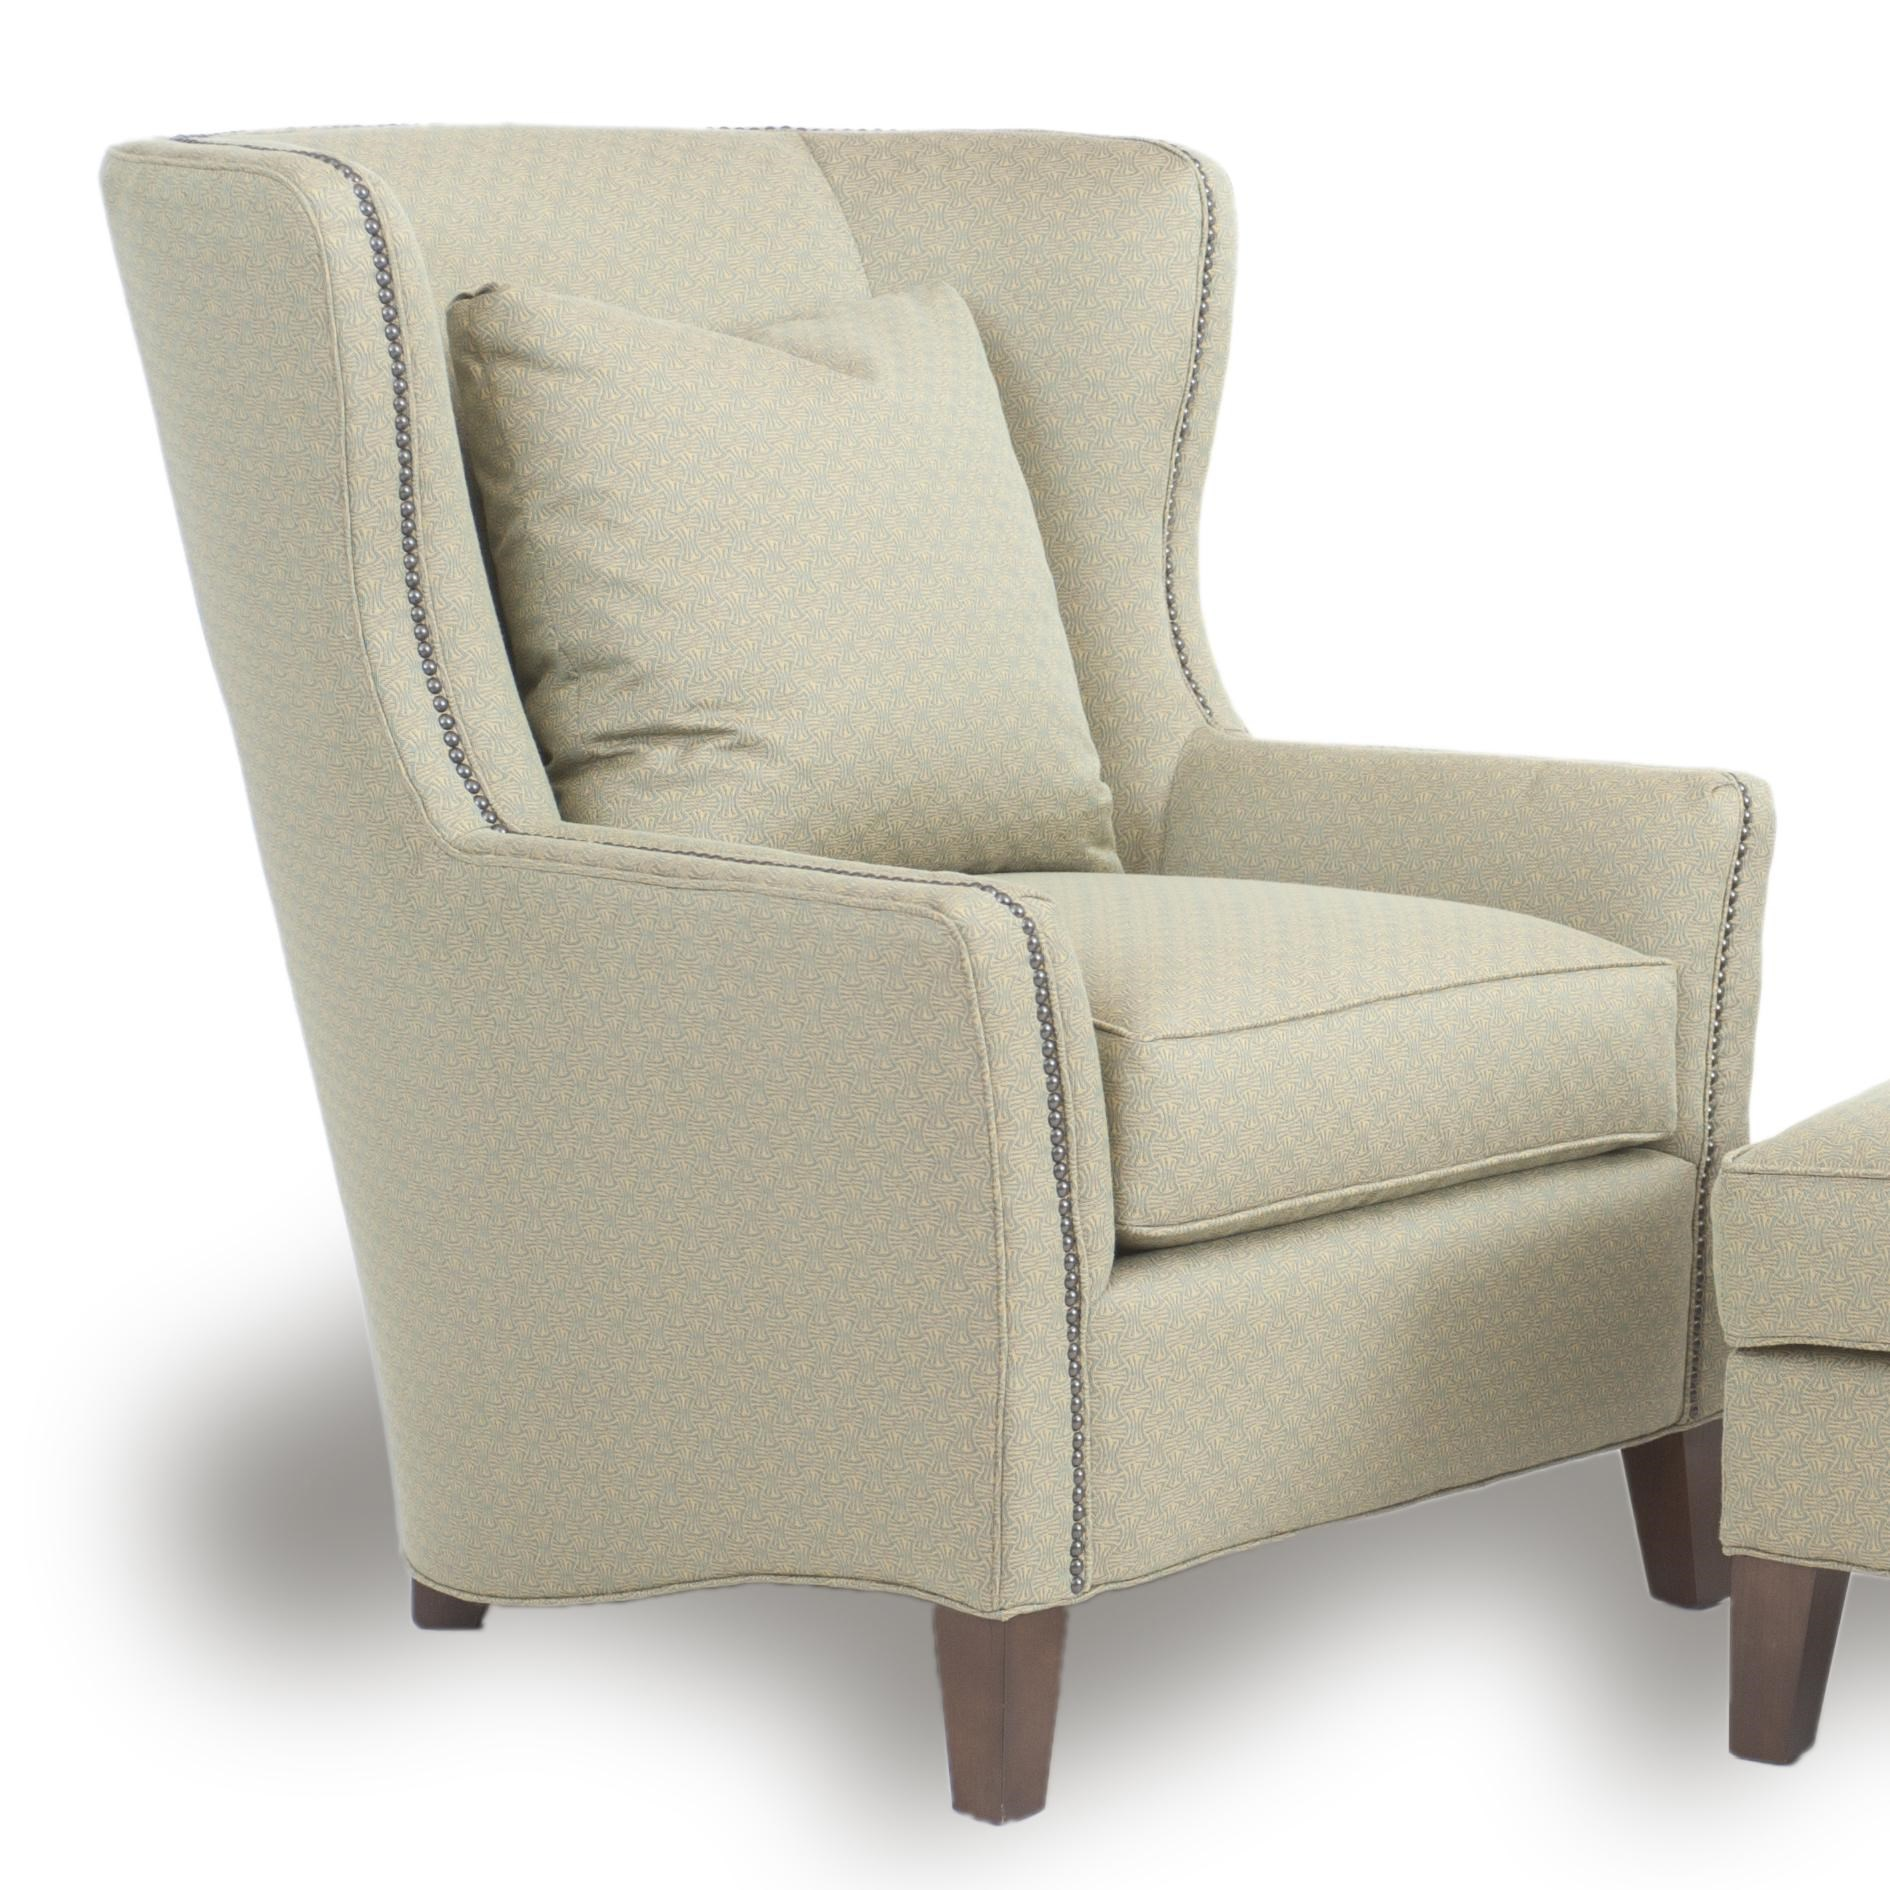 Top View; Wingback Chair